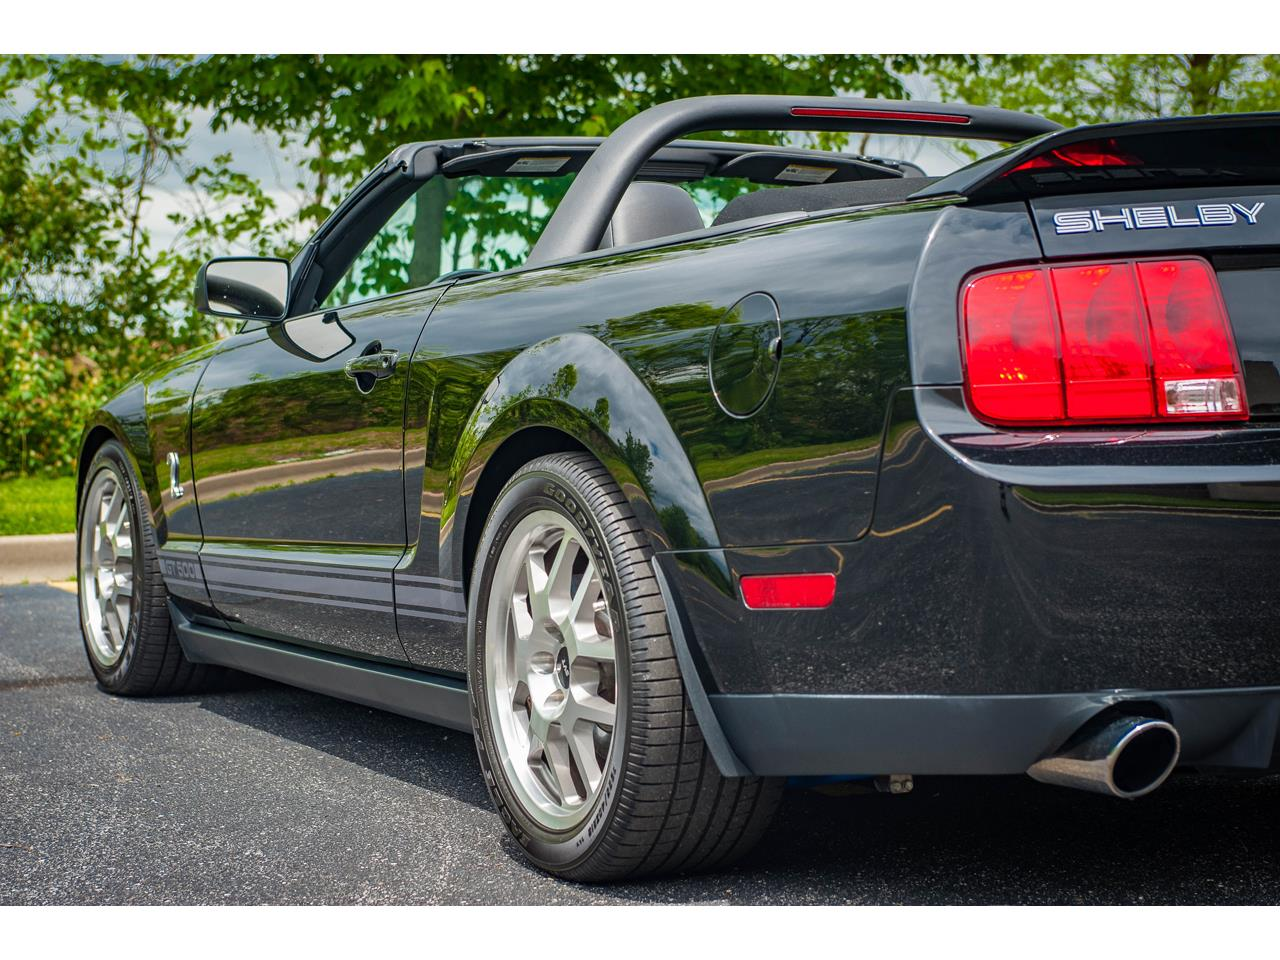 Large Picture of 2007 Mustang located in O'Fallon Illinois - $40,500.00 Offered by Gateway Classic Cars - St. Louis - QB98